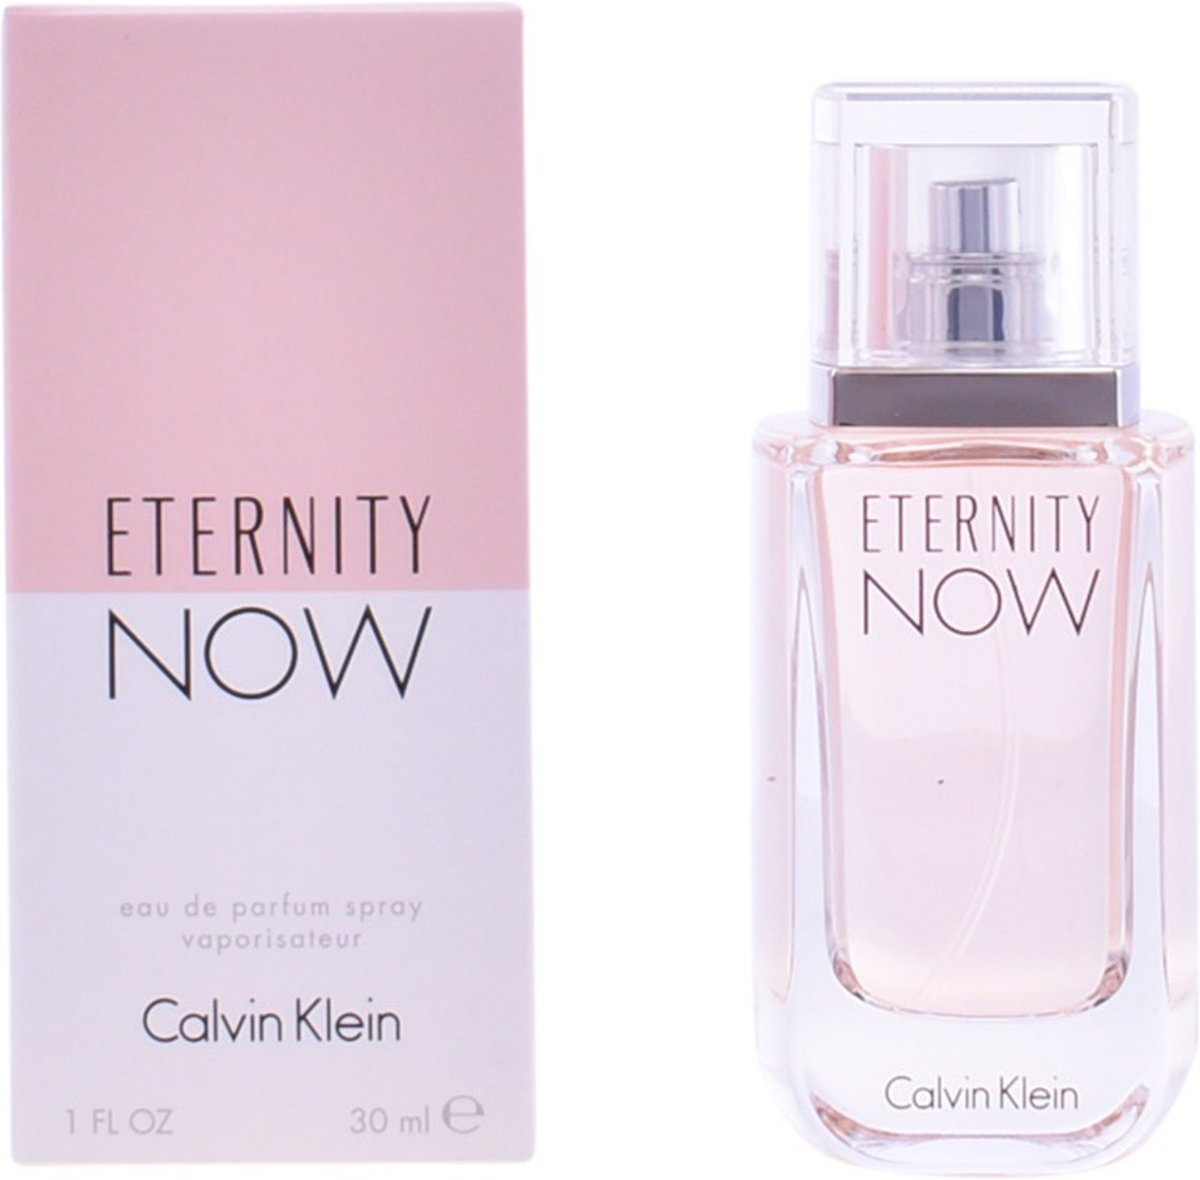 MULTI BUNDEL 2 stuks ETERNITY NOW Eau de Perfume Spray 30 ml